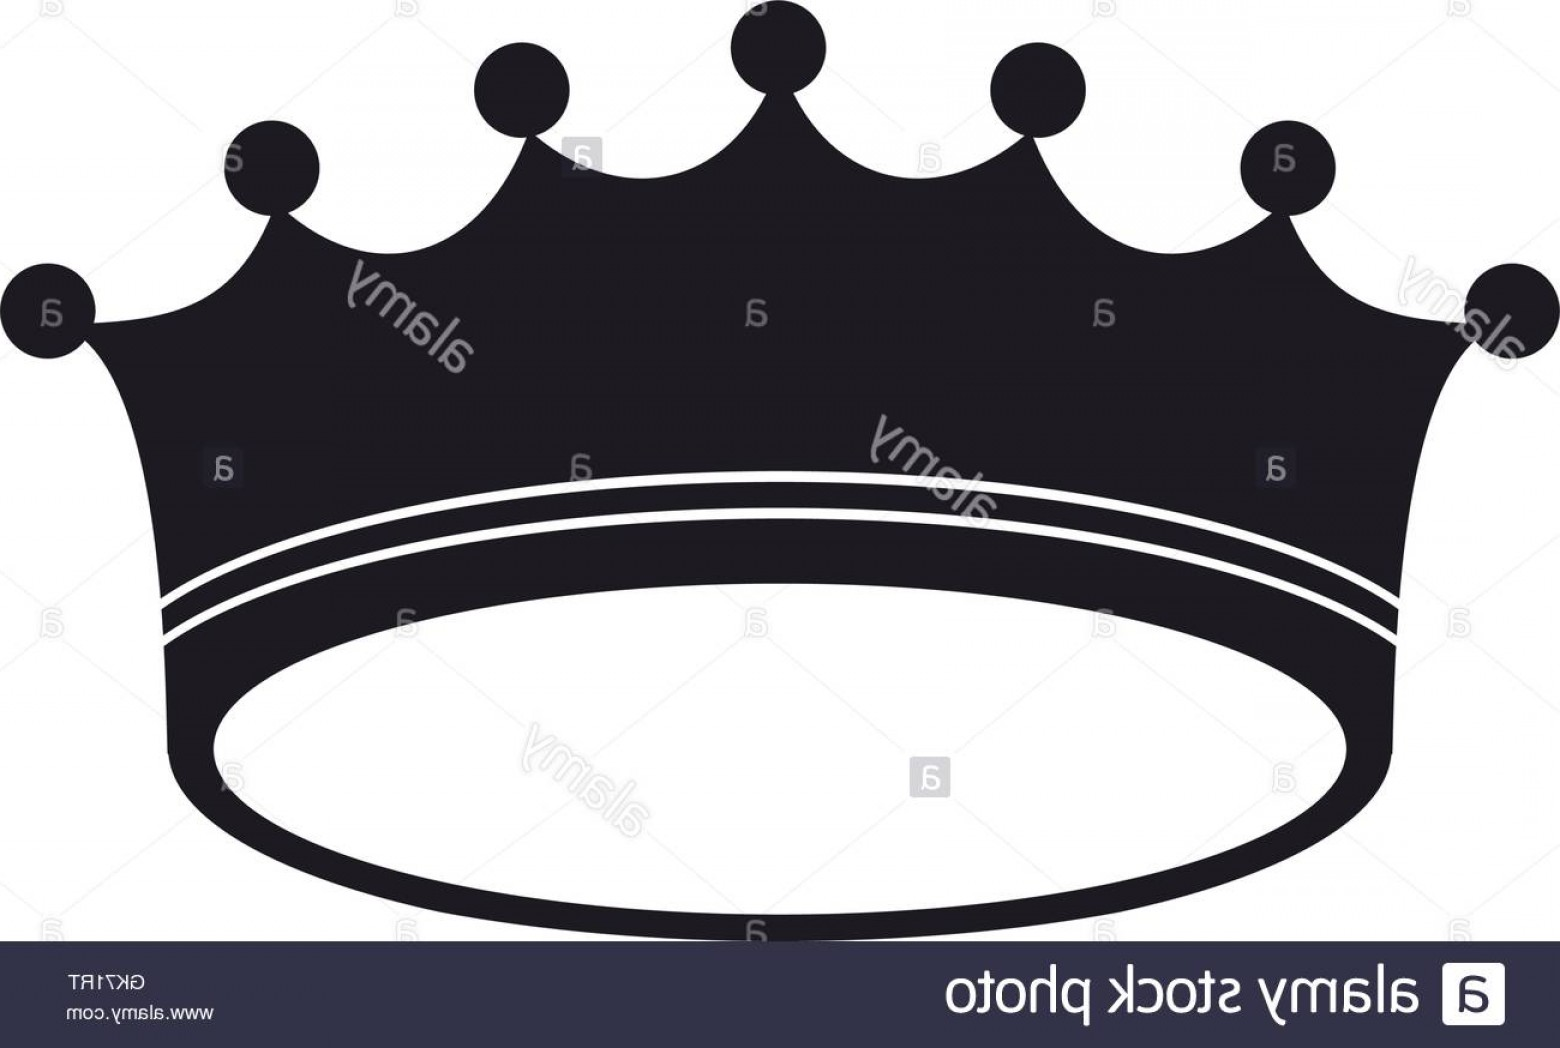 1560x1048 Stock Photo Crown Royal King Design Shopatcloth